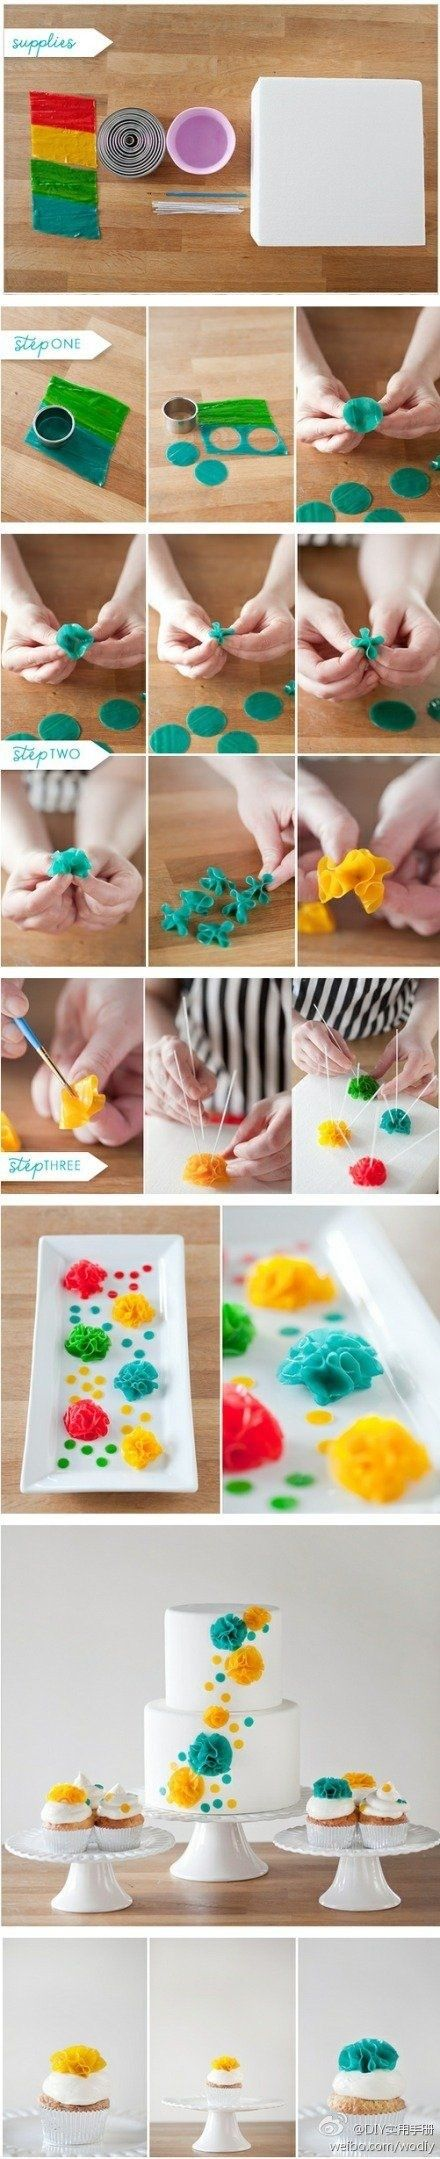 DIY Fruit Roll Up Flowers! |Cake Decorations|